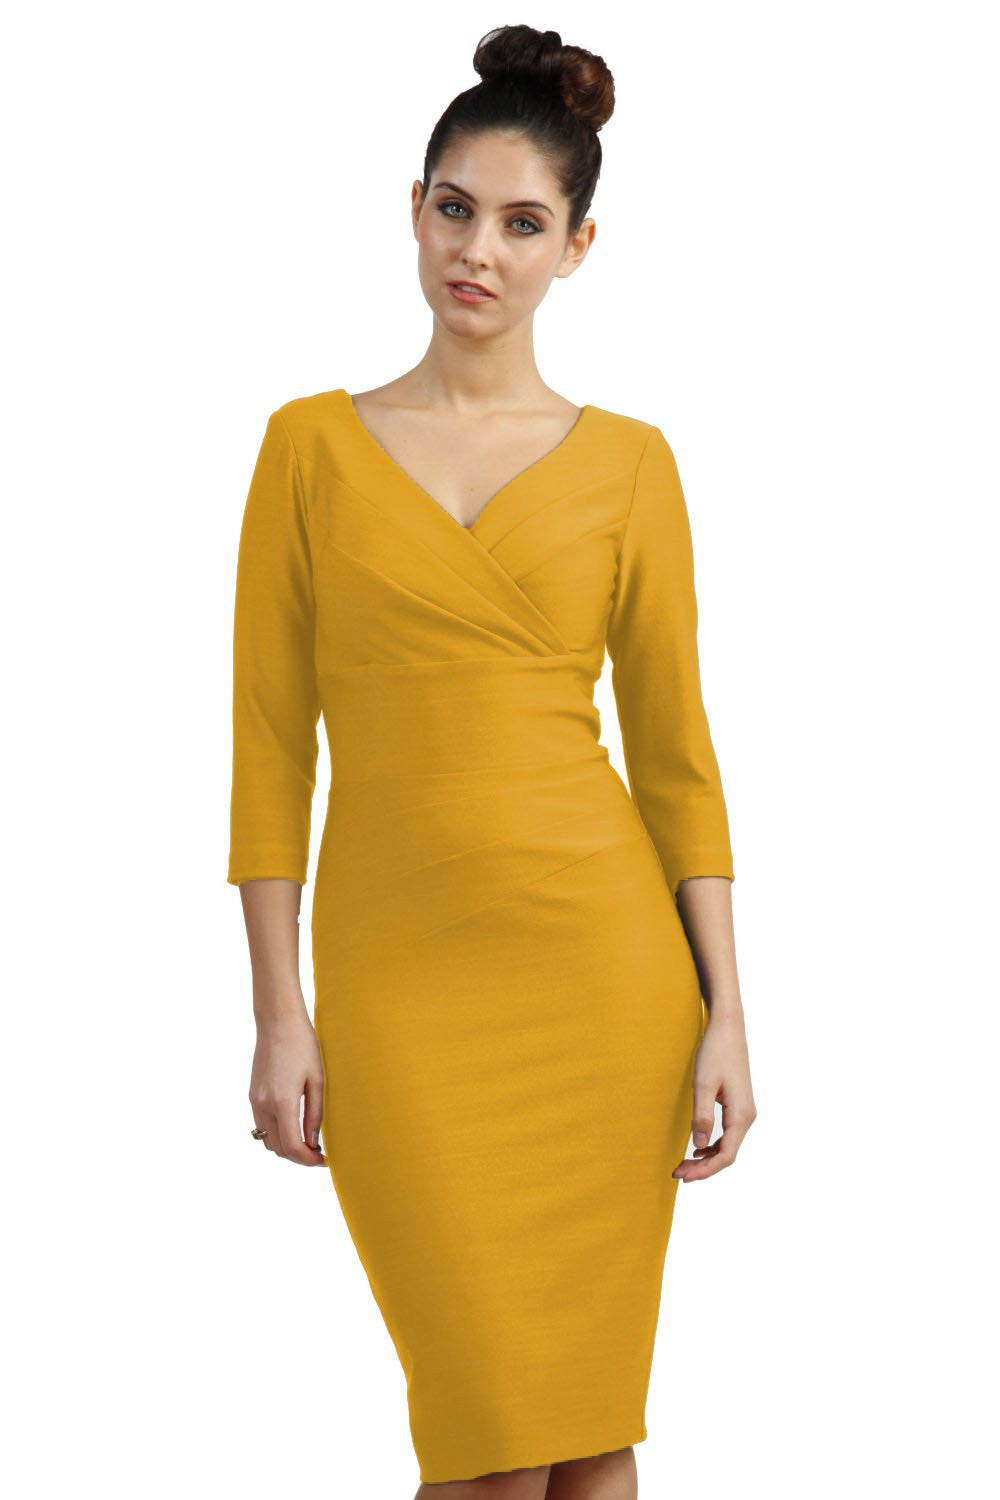 Diva Barton Dress, Seed, Daffodil Yellow